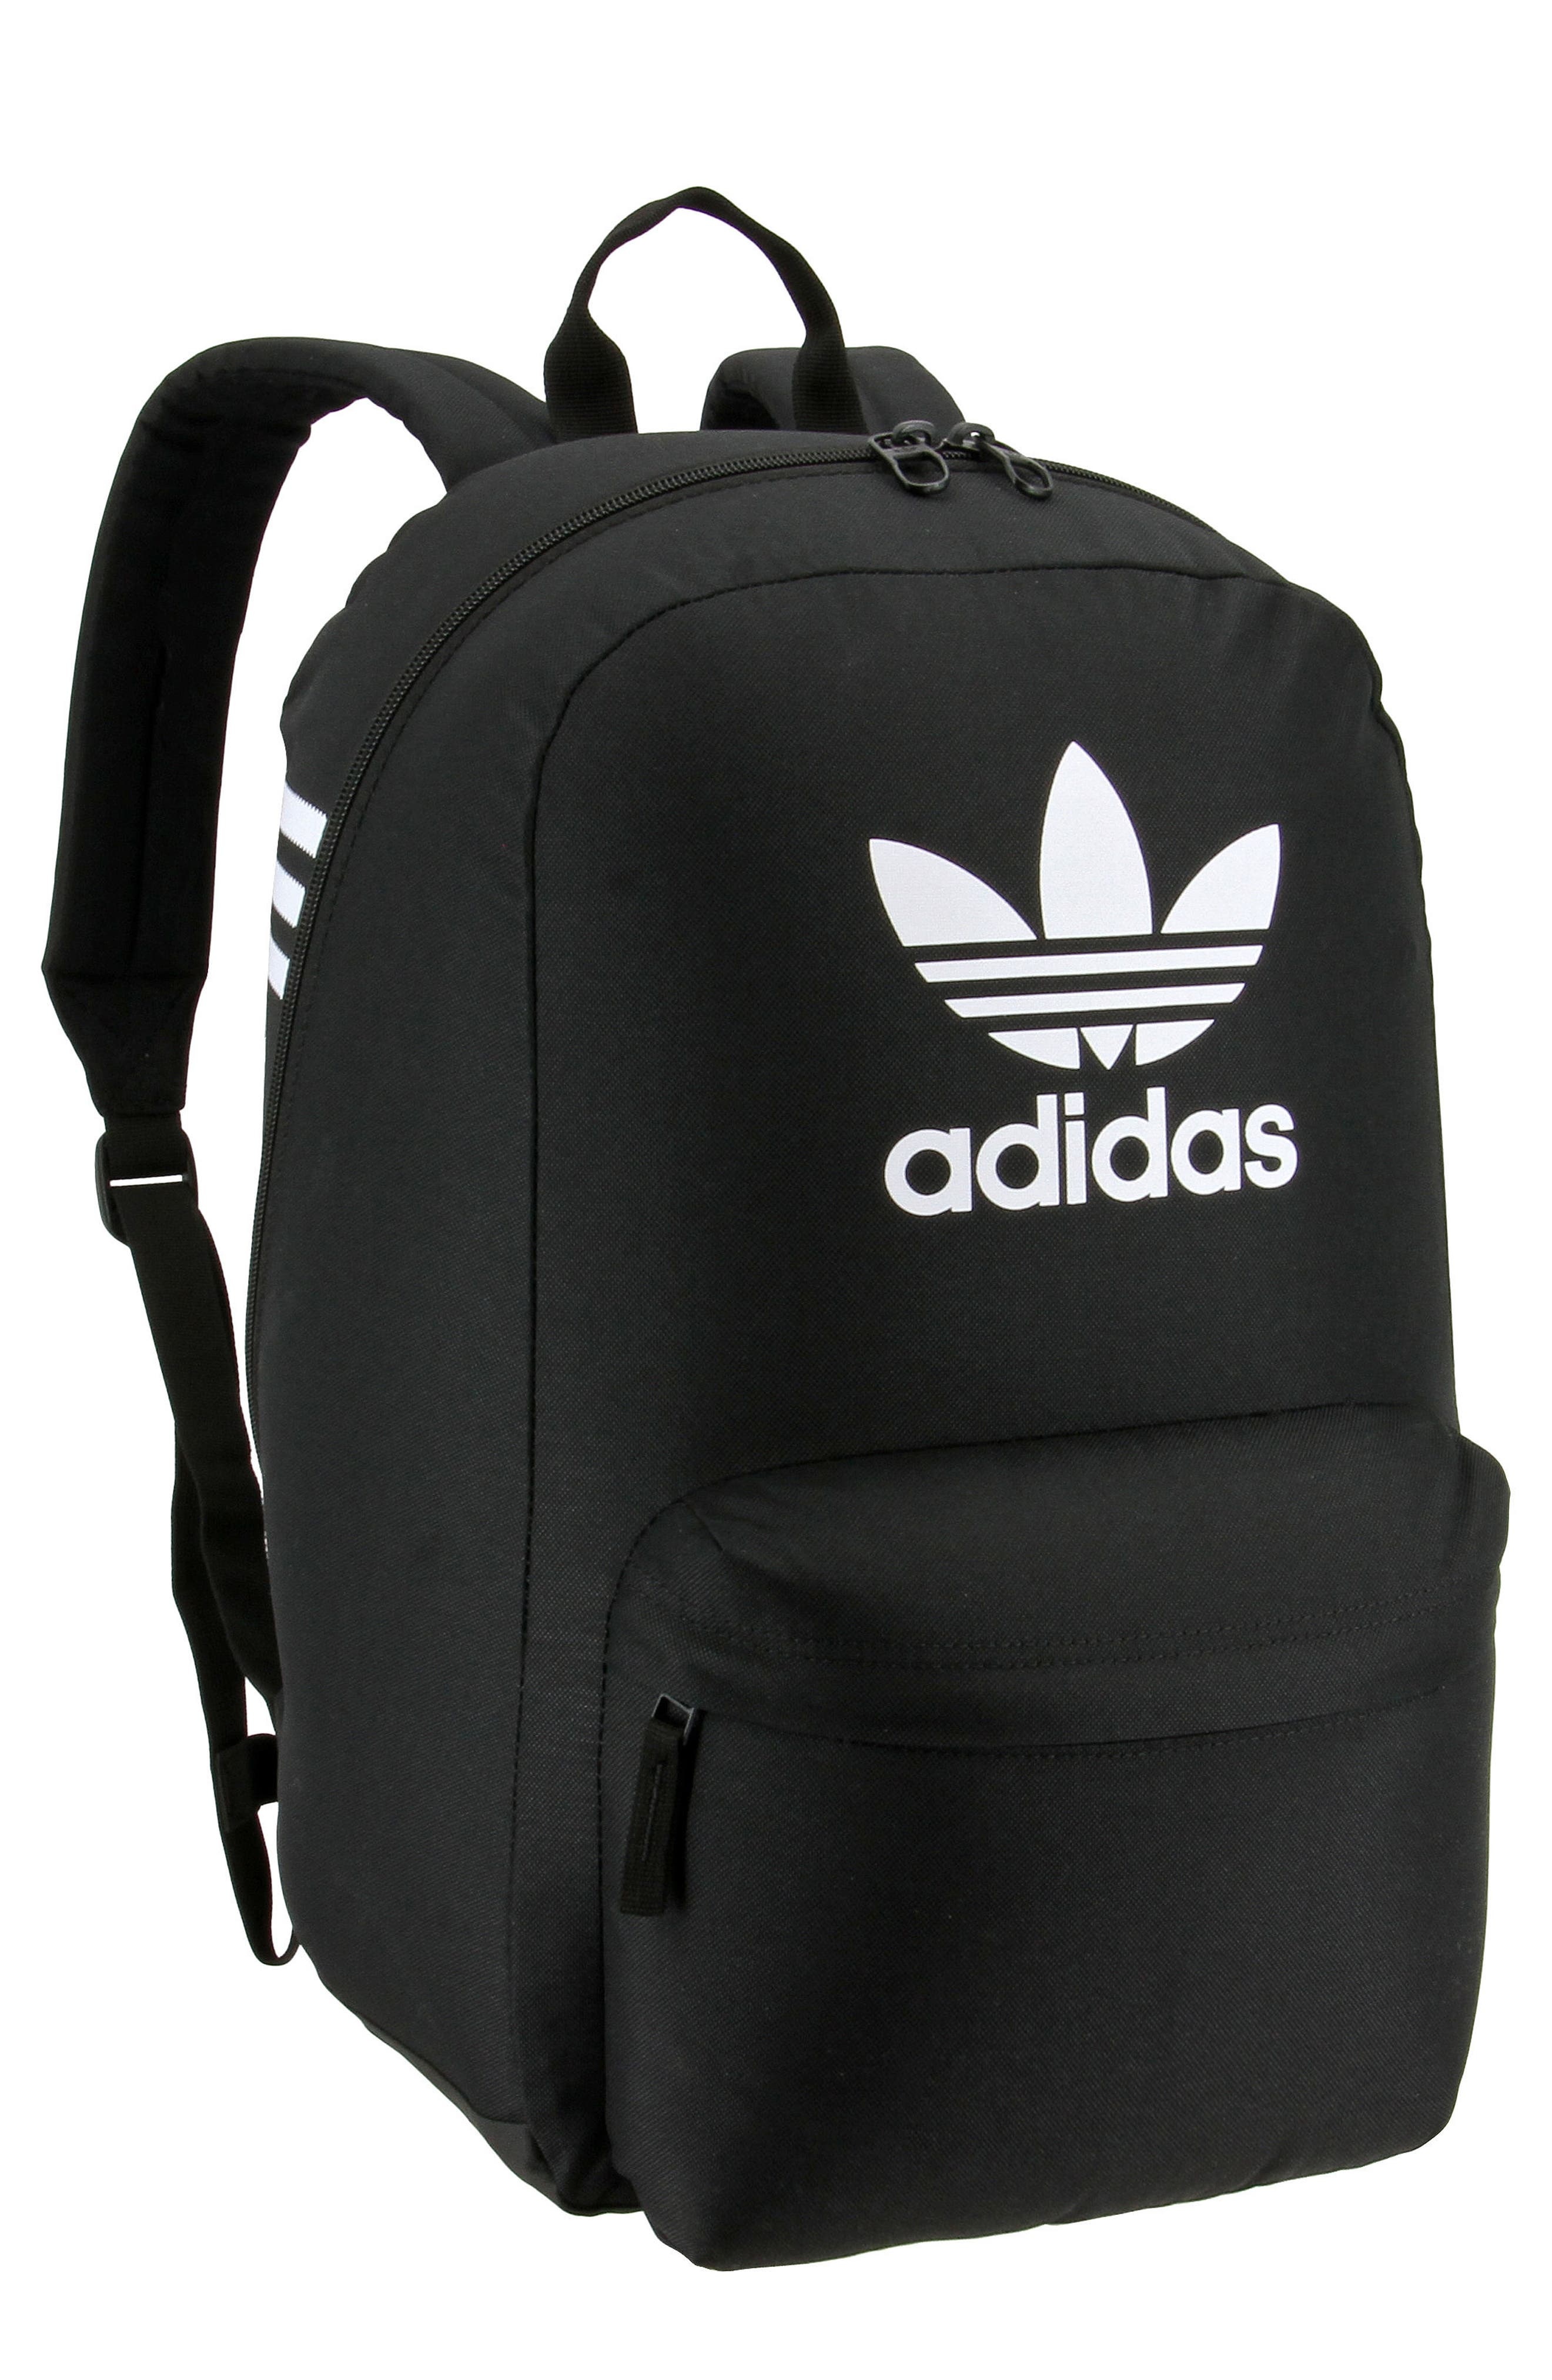 Originals Big Logo Backpack - Black in Black/ White